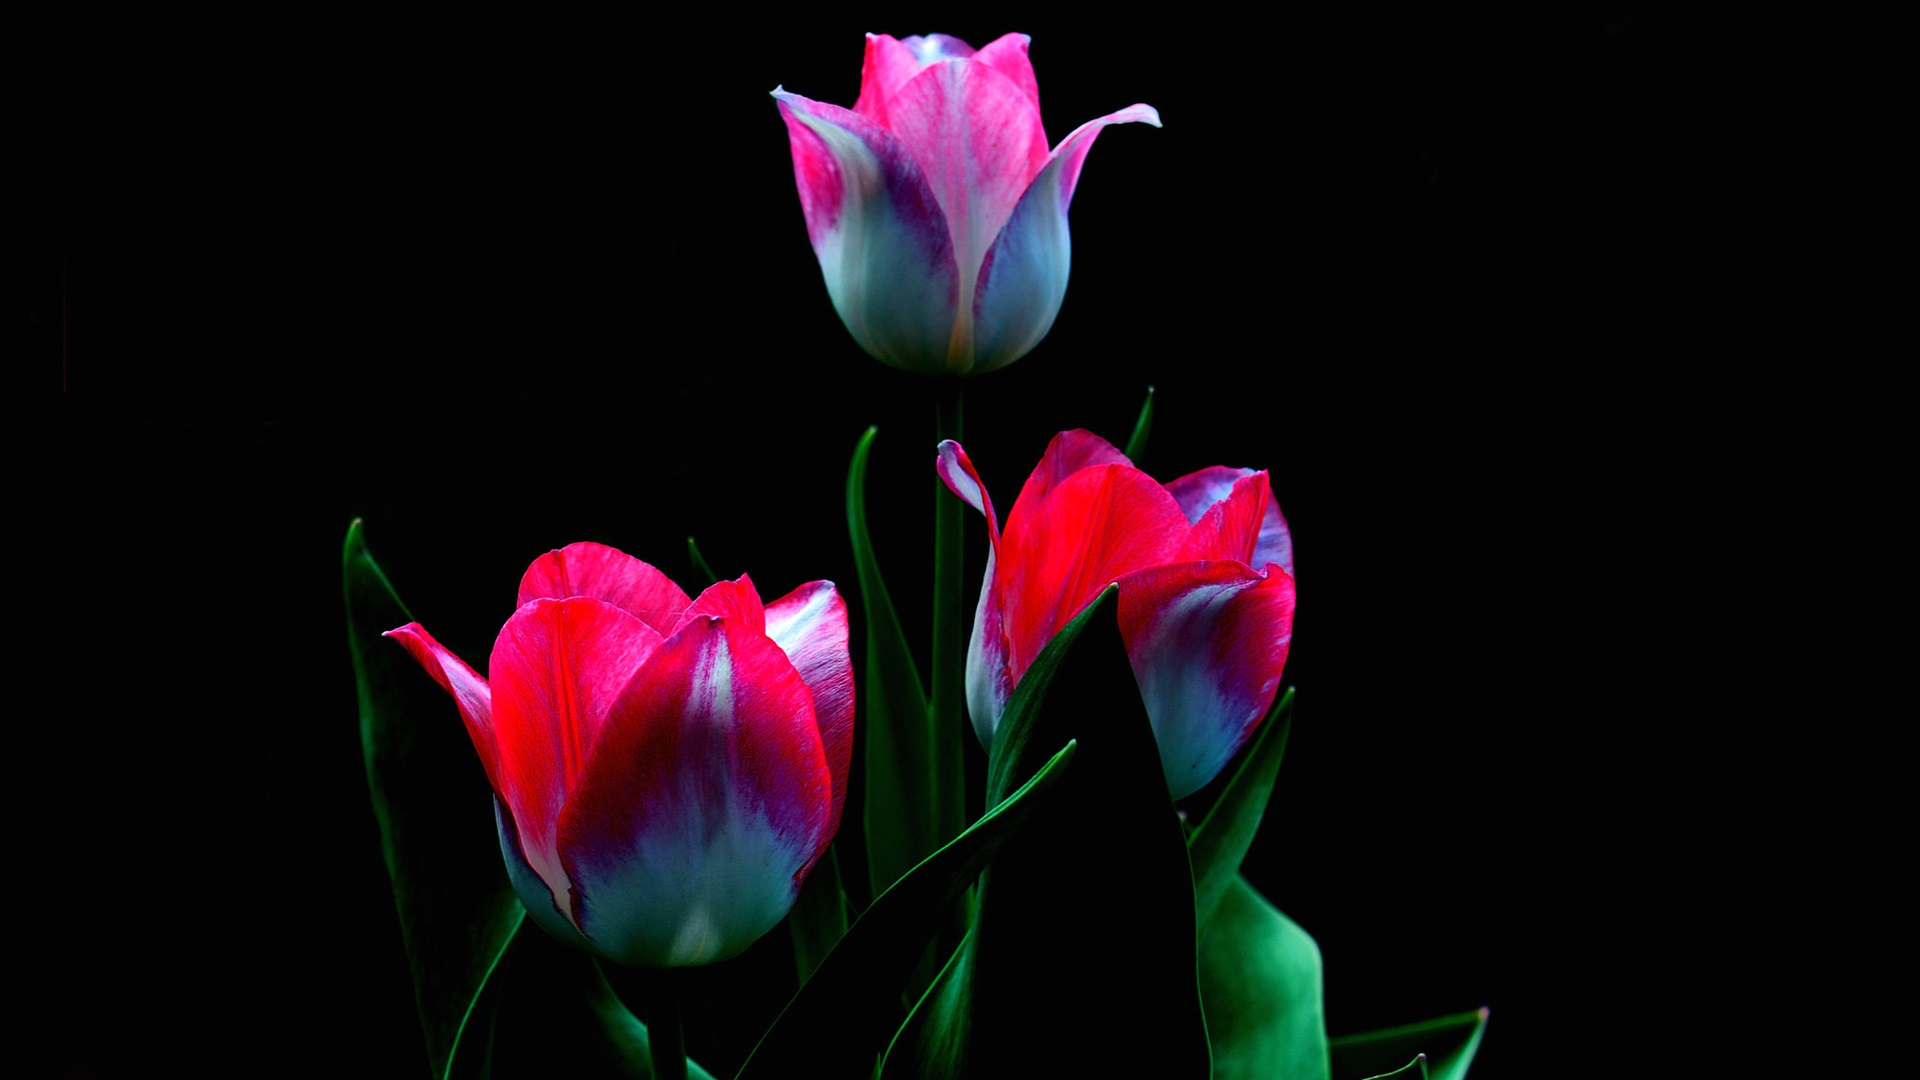 Wallpaper White Red Petals Tulips Black Background 1920x1200 Hd Picture Image